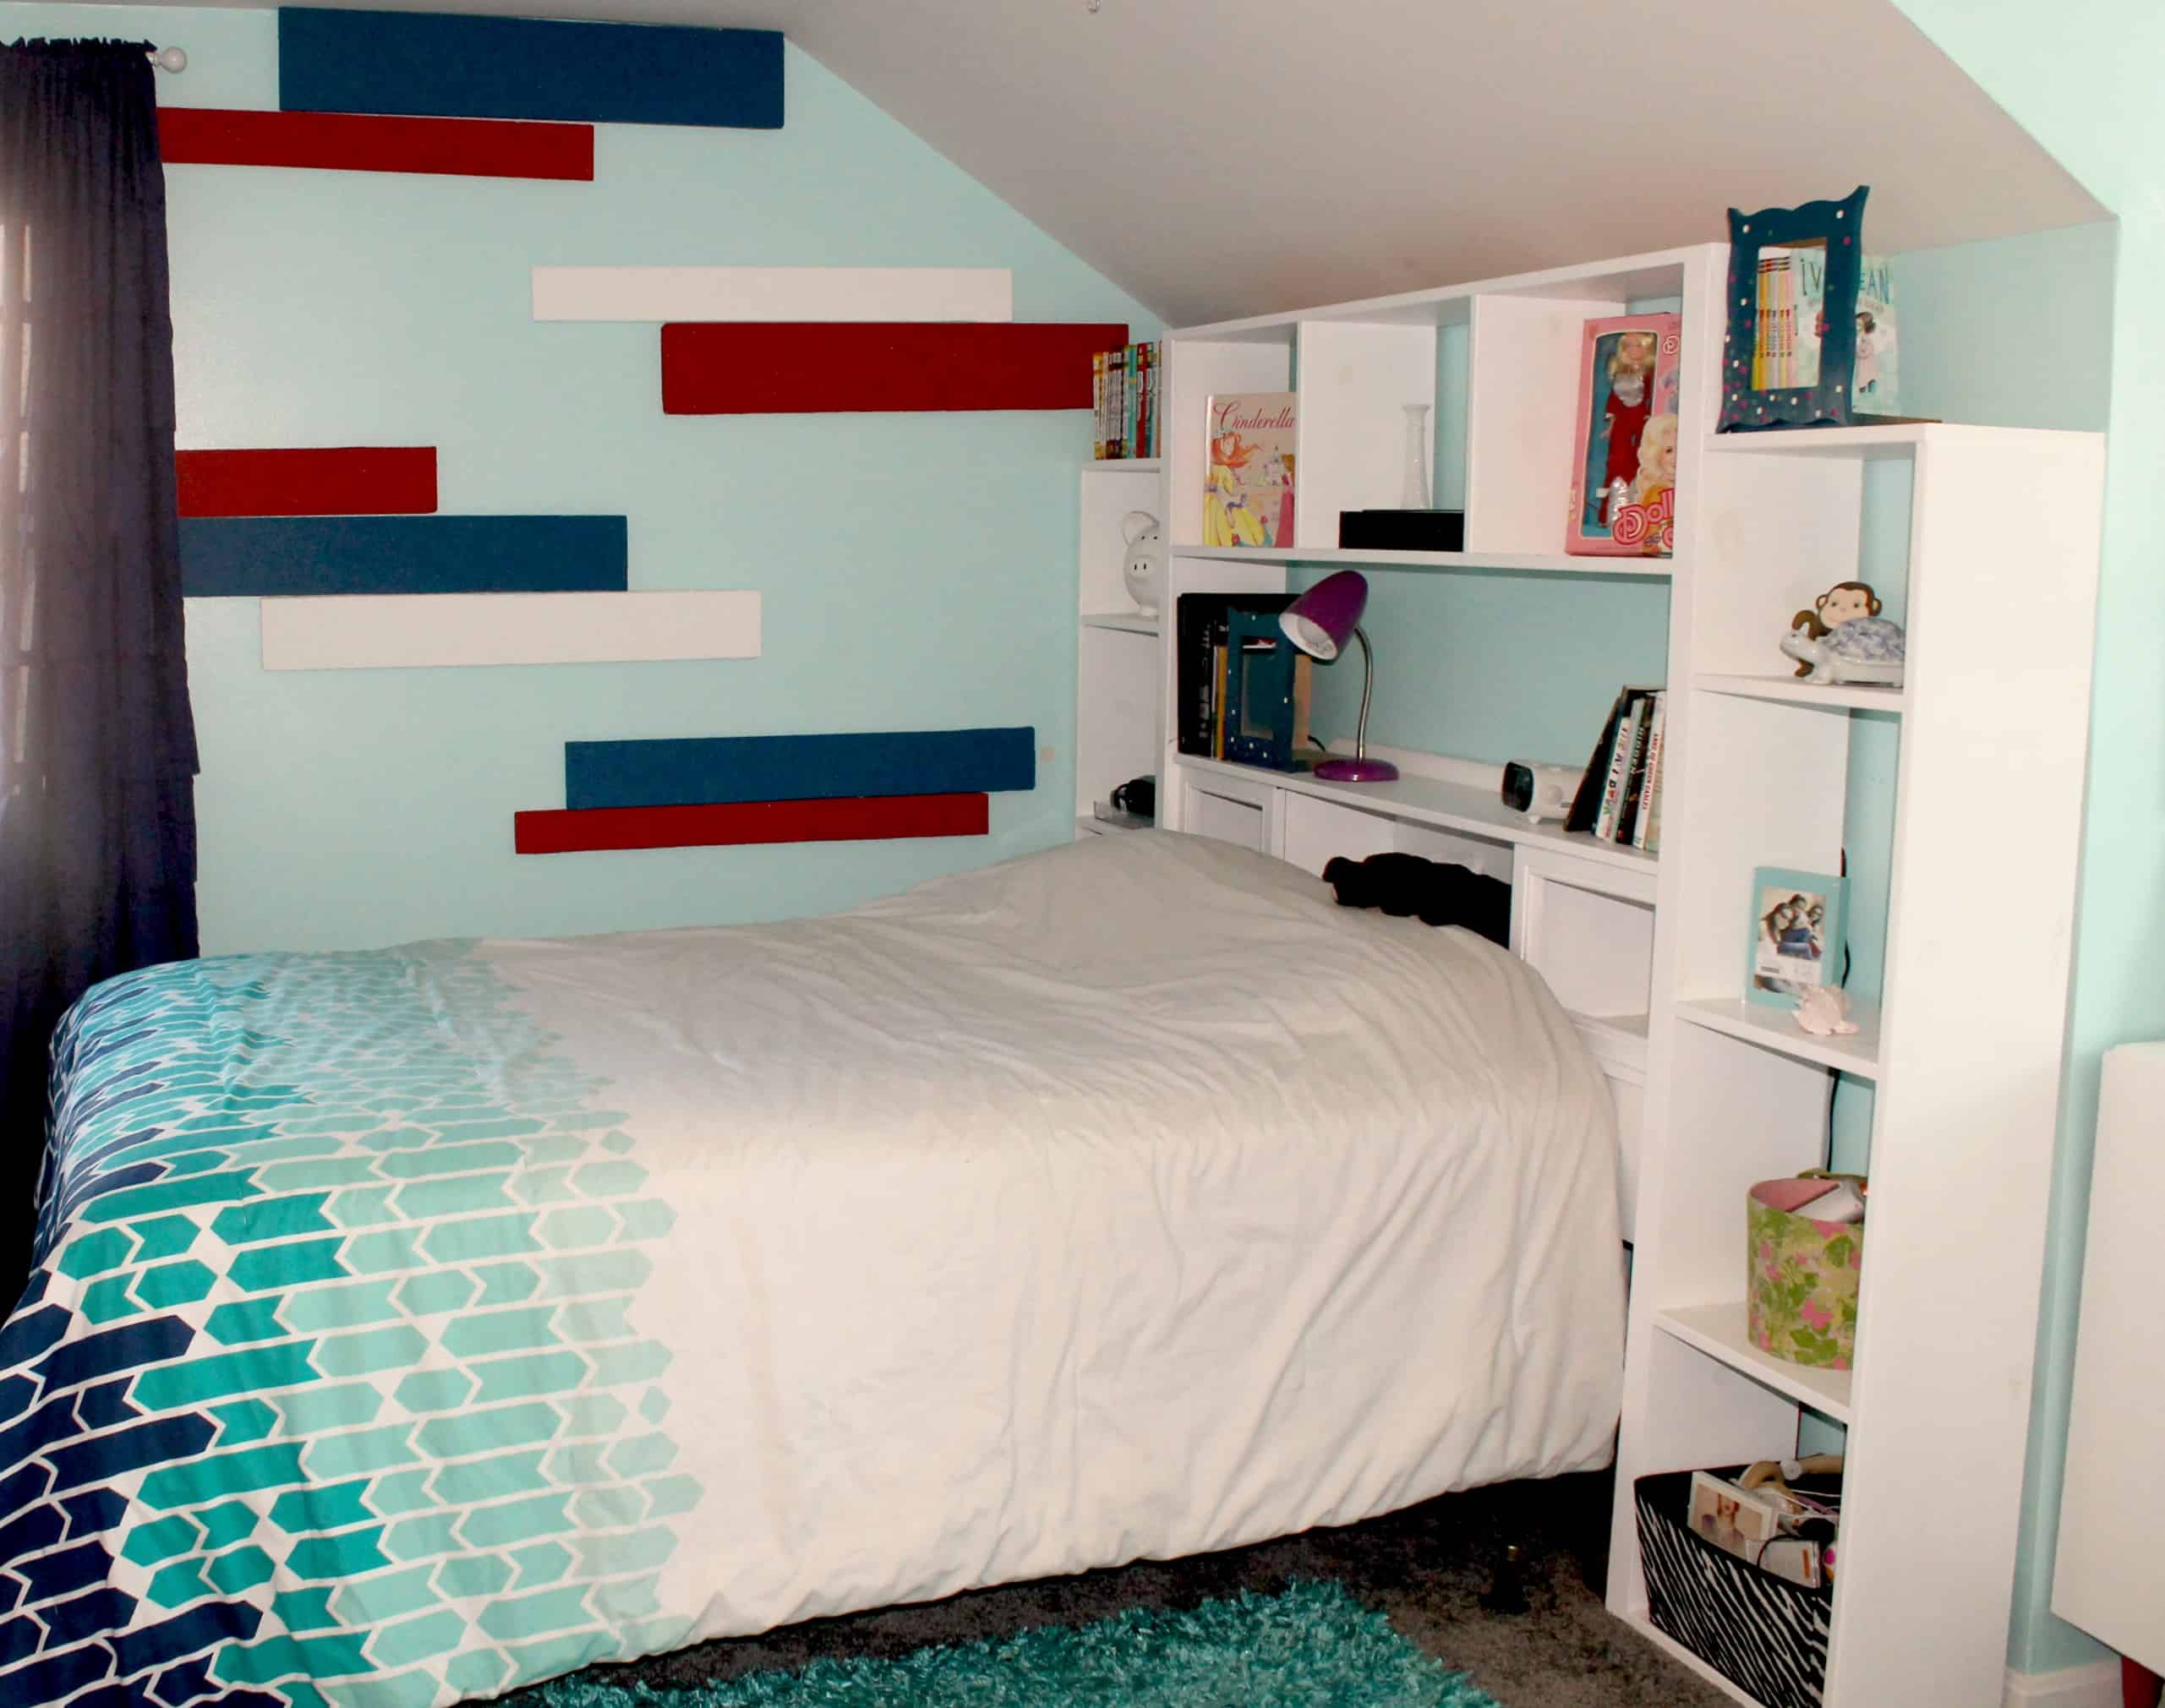 Home decor archives a turtles life for me striped wall using styrofoam amipublicfo Images